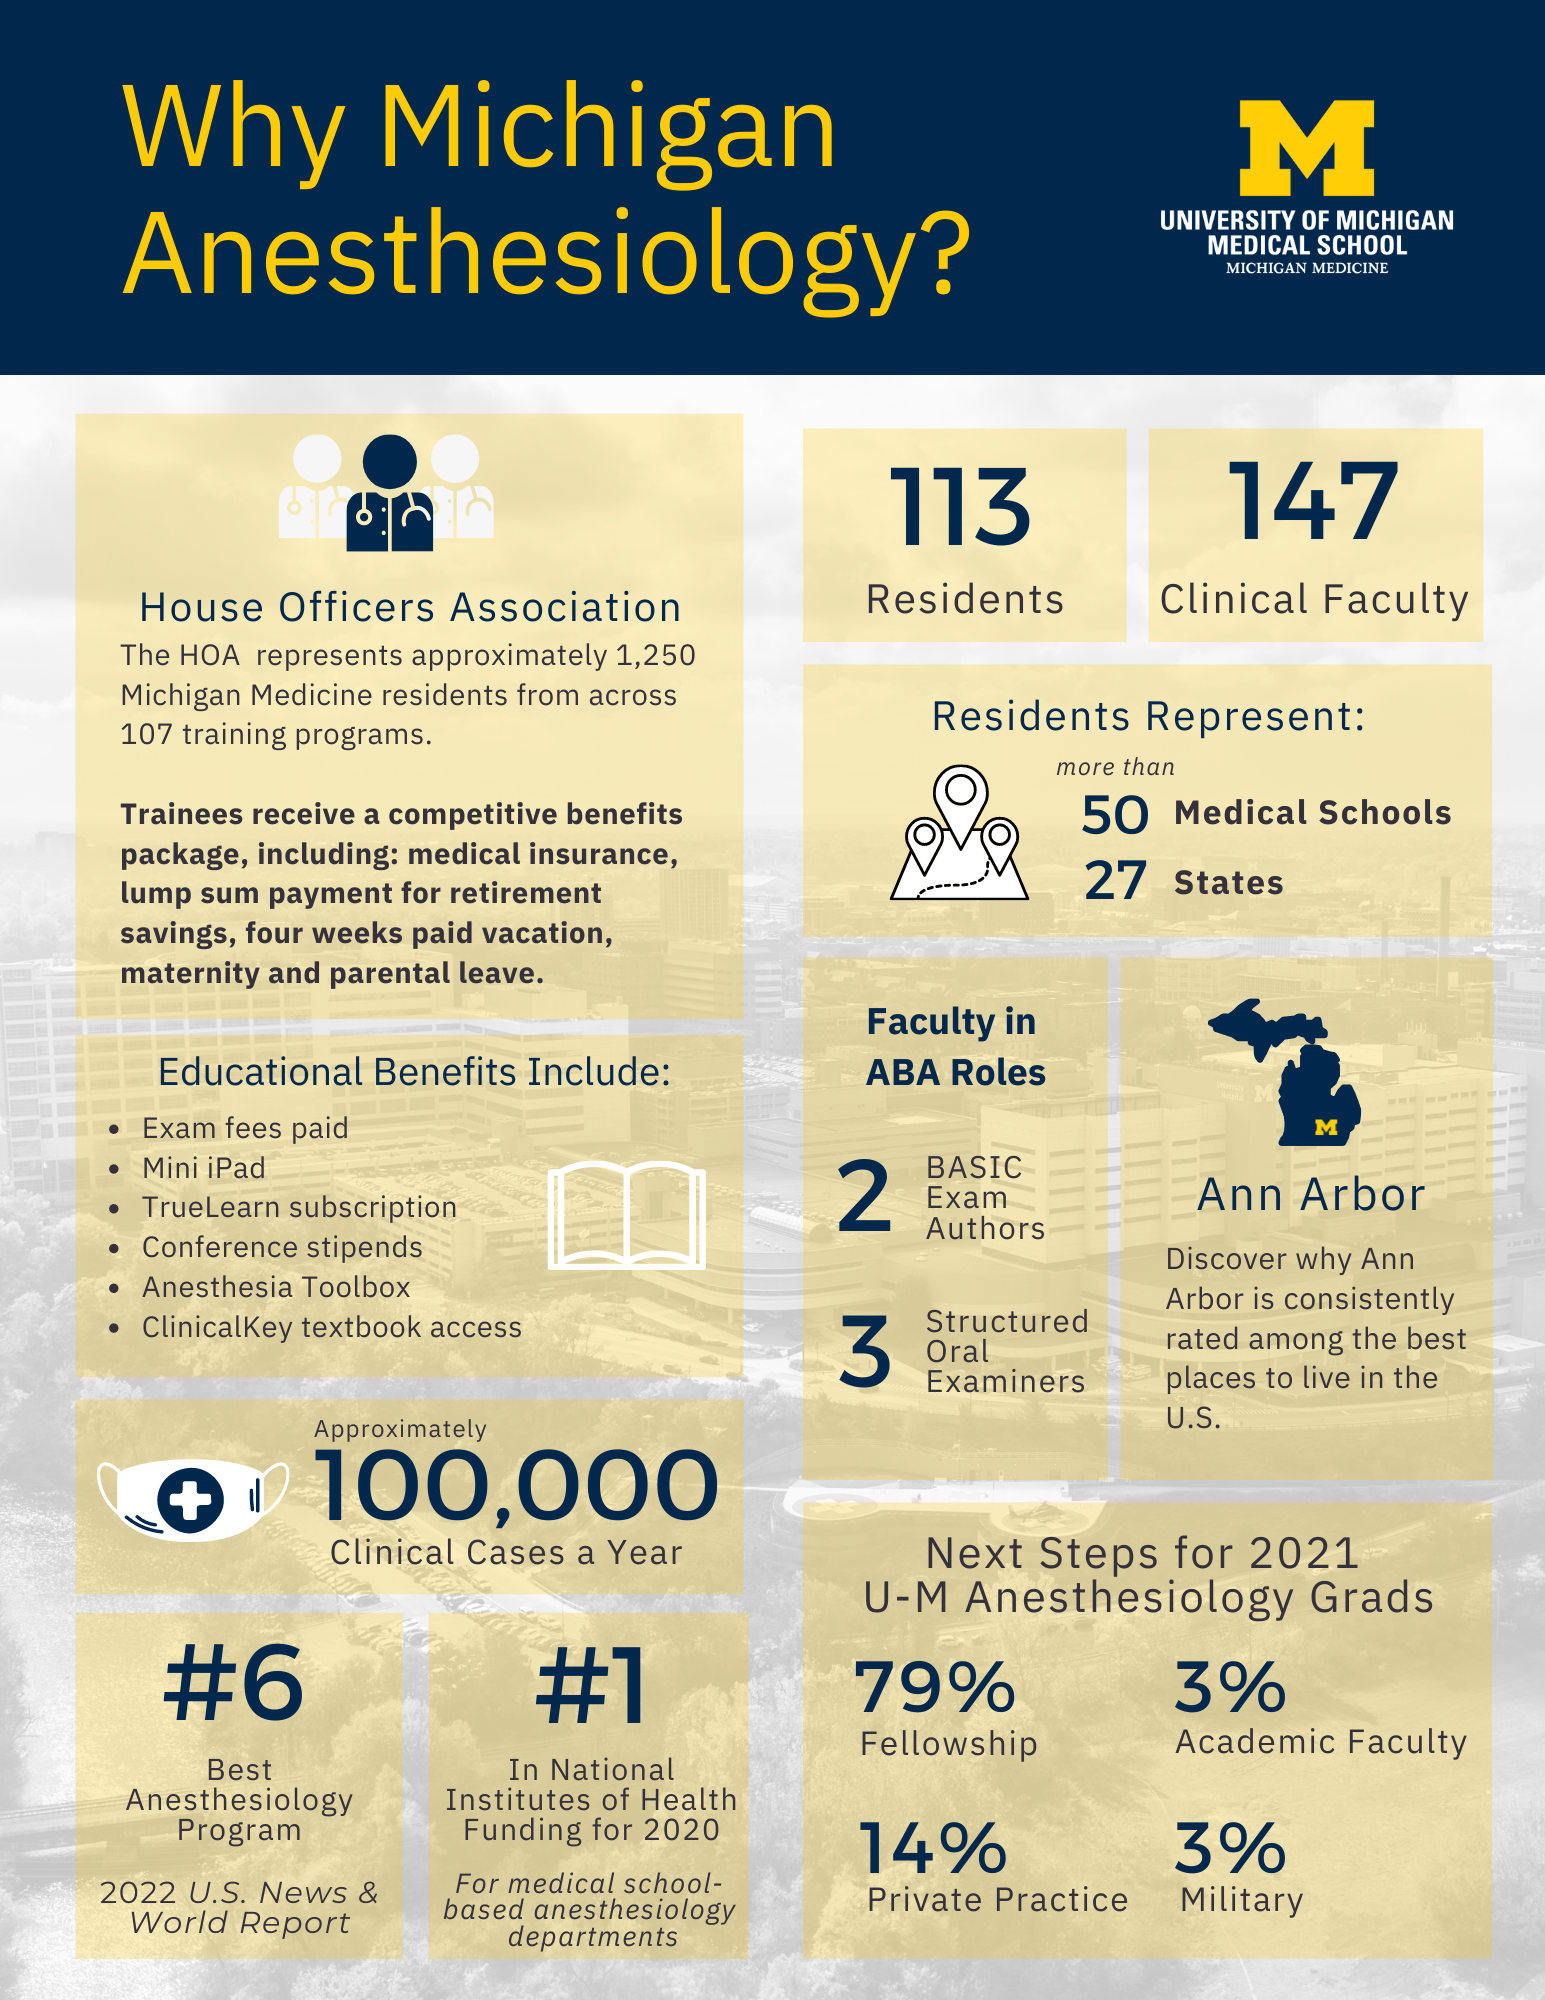 Why U-M Anesthesiology? 113 Residents; 147 Faculty; Residents from 27 States, 50+ Med Schools; 100K Clinical Cases; #6 Best Anesthesiology Program; #1 NIH Funded; House Officers Assoc. Representation; Exam Fees Paid; mini iPad; conference stipends + more